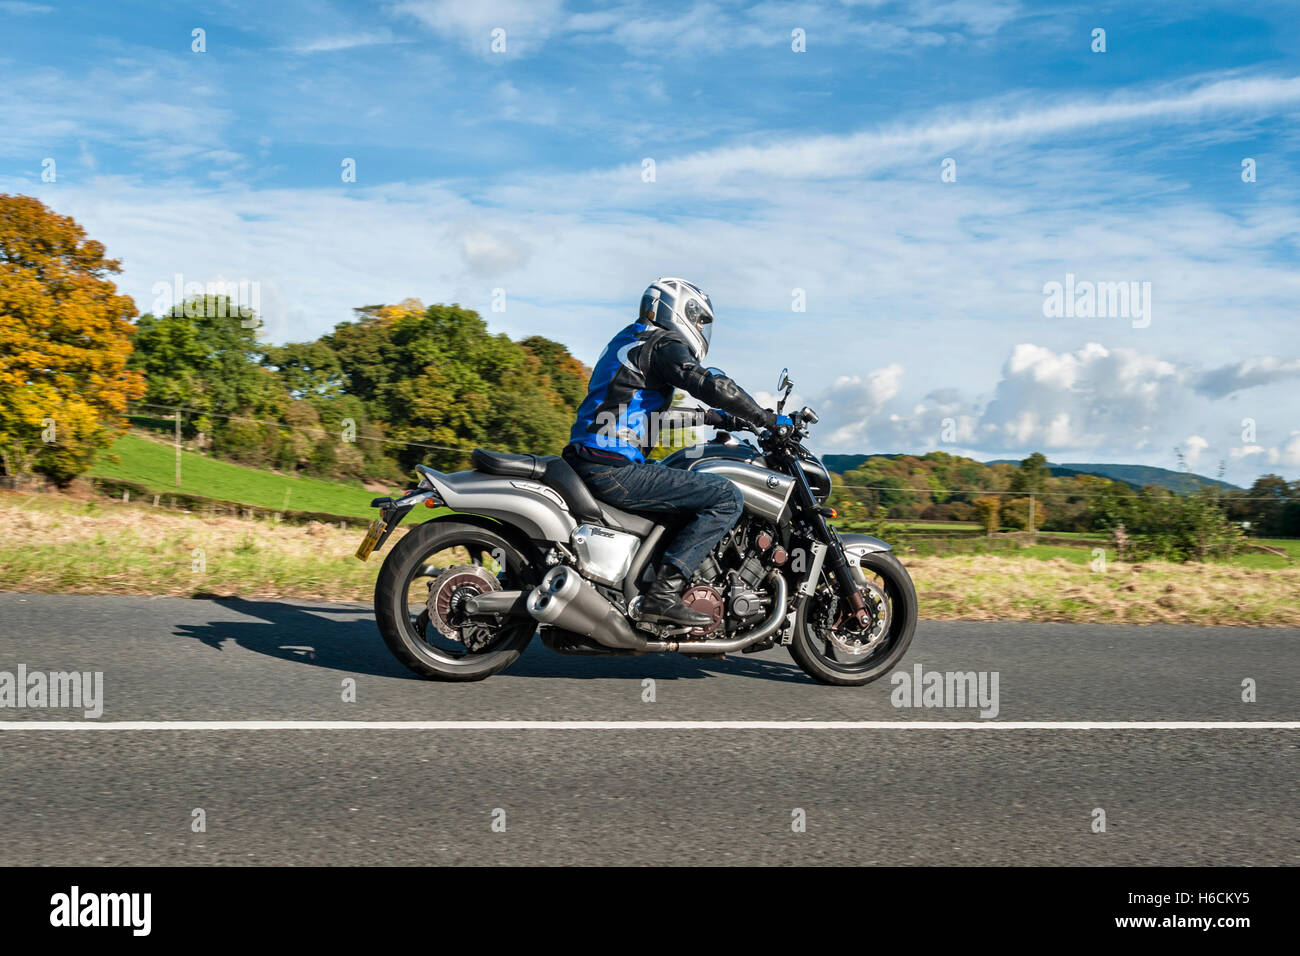 UK. Road testing the new 2016 Yamaha VMAX motorcycle, with a 4-cylinder liquid cooled 1679cc V4 engine - Stock Image